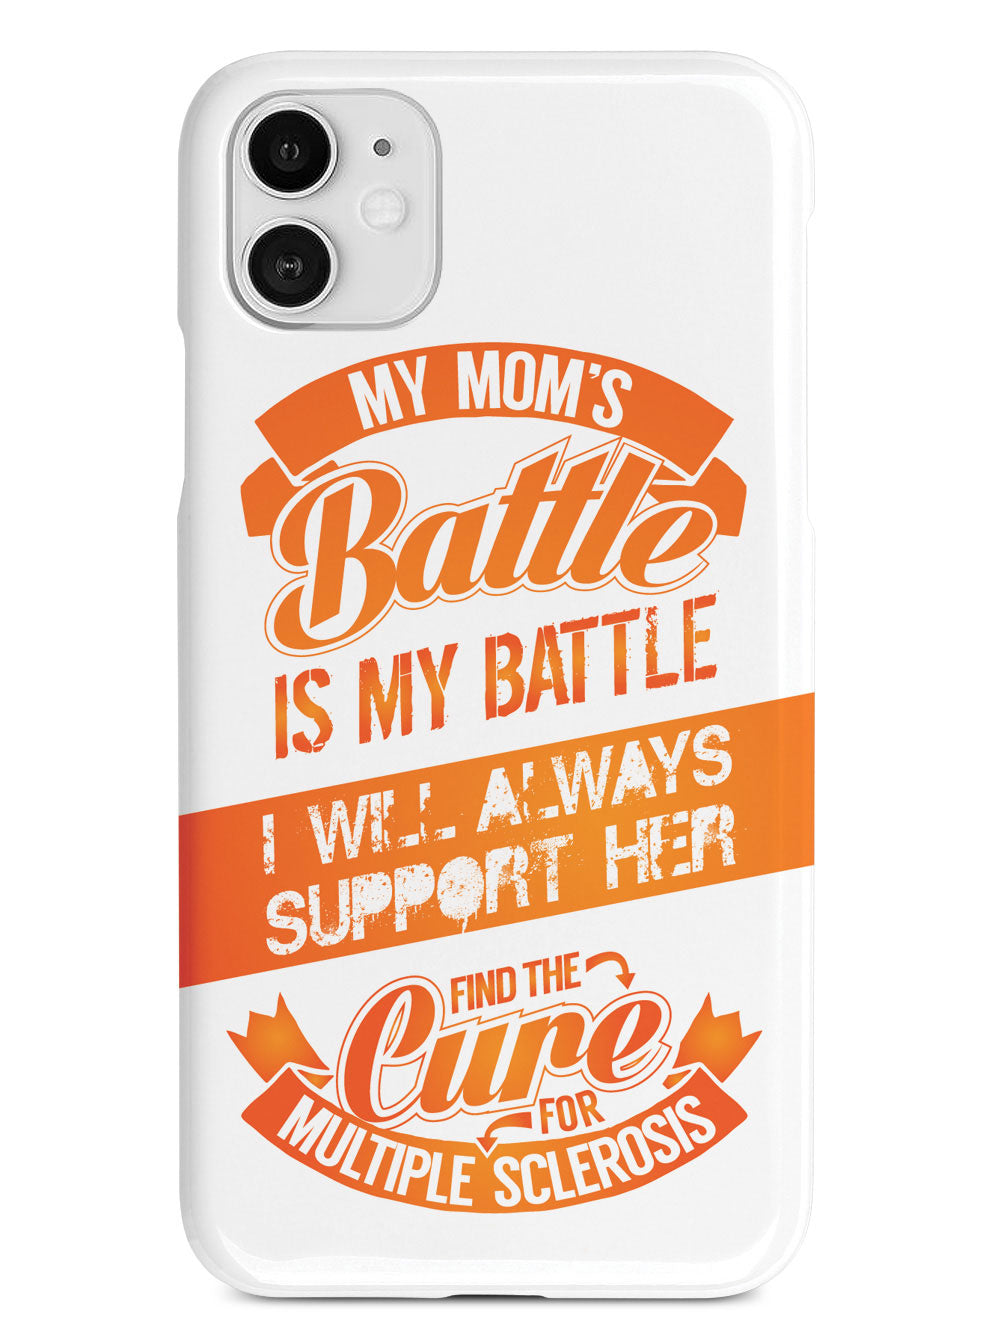 My Mom's Battle - Multiple Sclerosis MS Awareness/Support Case